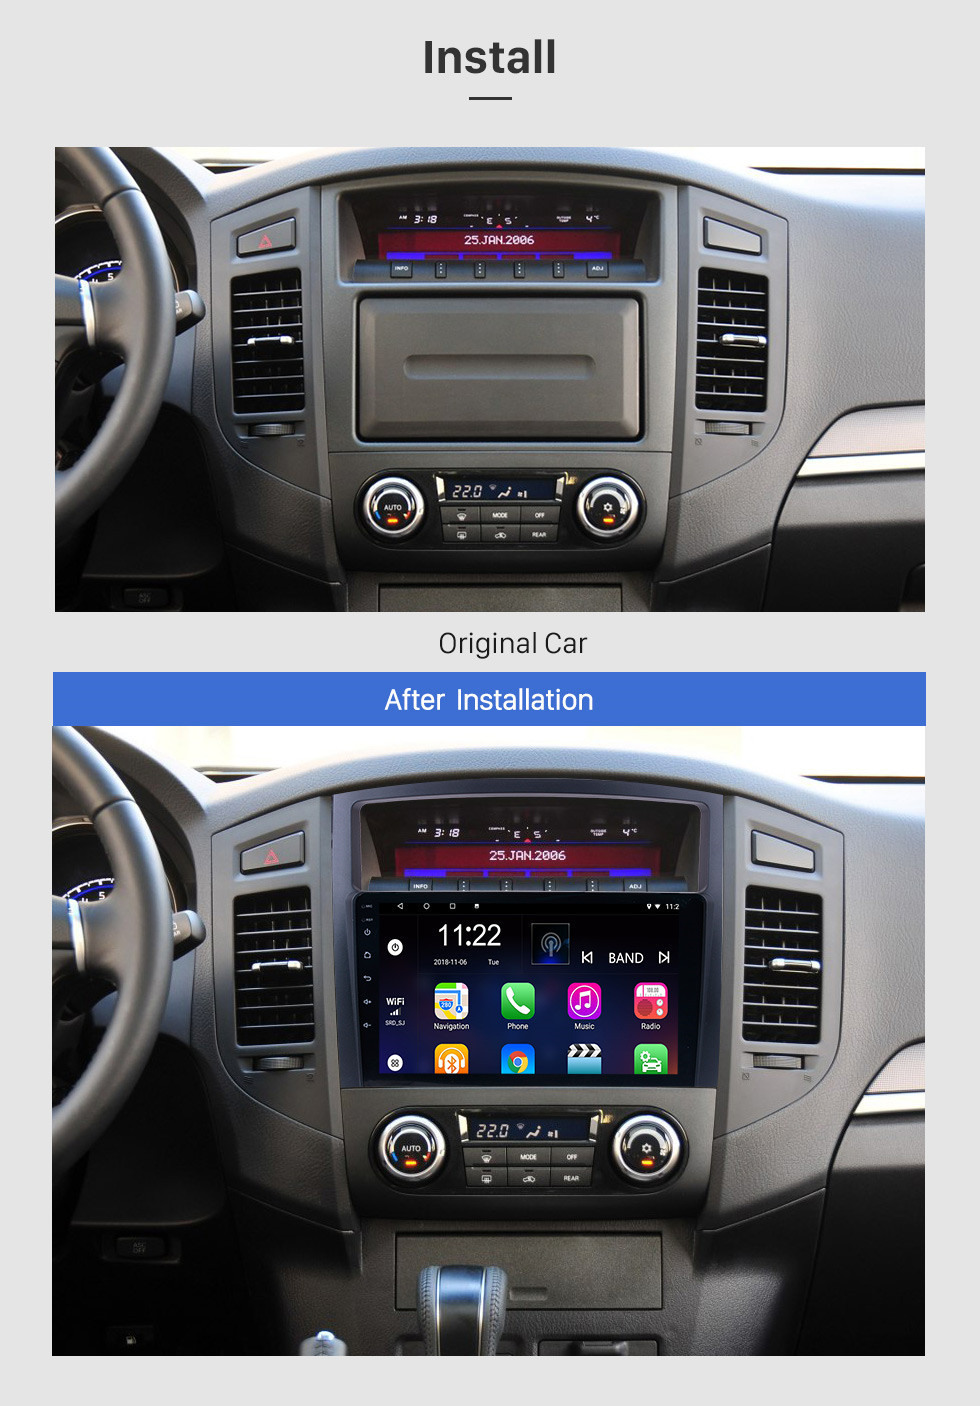 Seicane 9 inch HD 1024*600 Touch Screen 2006 2007 2008-2013 Mitsubishi PAJERO V97/V93 Android 10.0 Radio GPS Navigation Car Stereo with Bluetooth Music MP3 USB 1080P Video WIFI Mirror Link